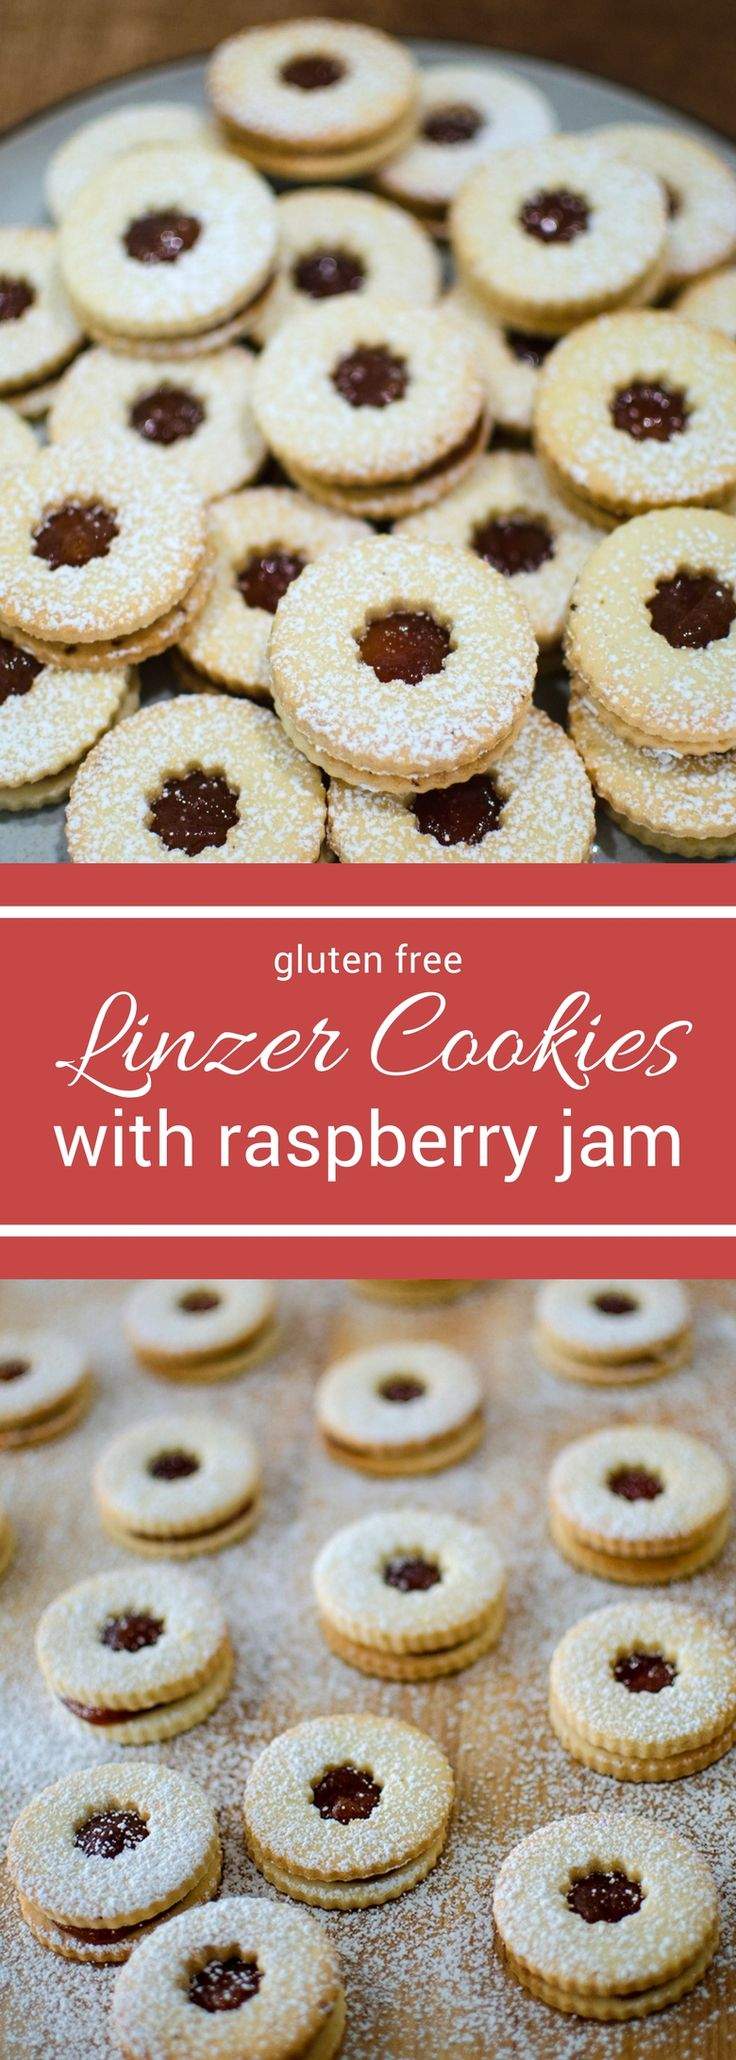 Buttery gluten free short bread cookies and raspberry jam make for one delicious cookies! These gluten free linzer cookies are so delicious no one will guess they're gluten free